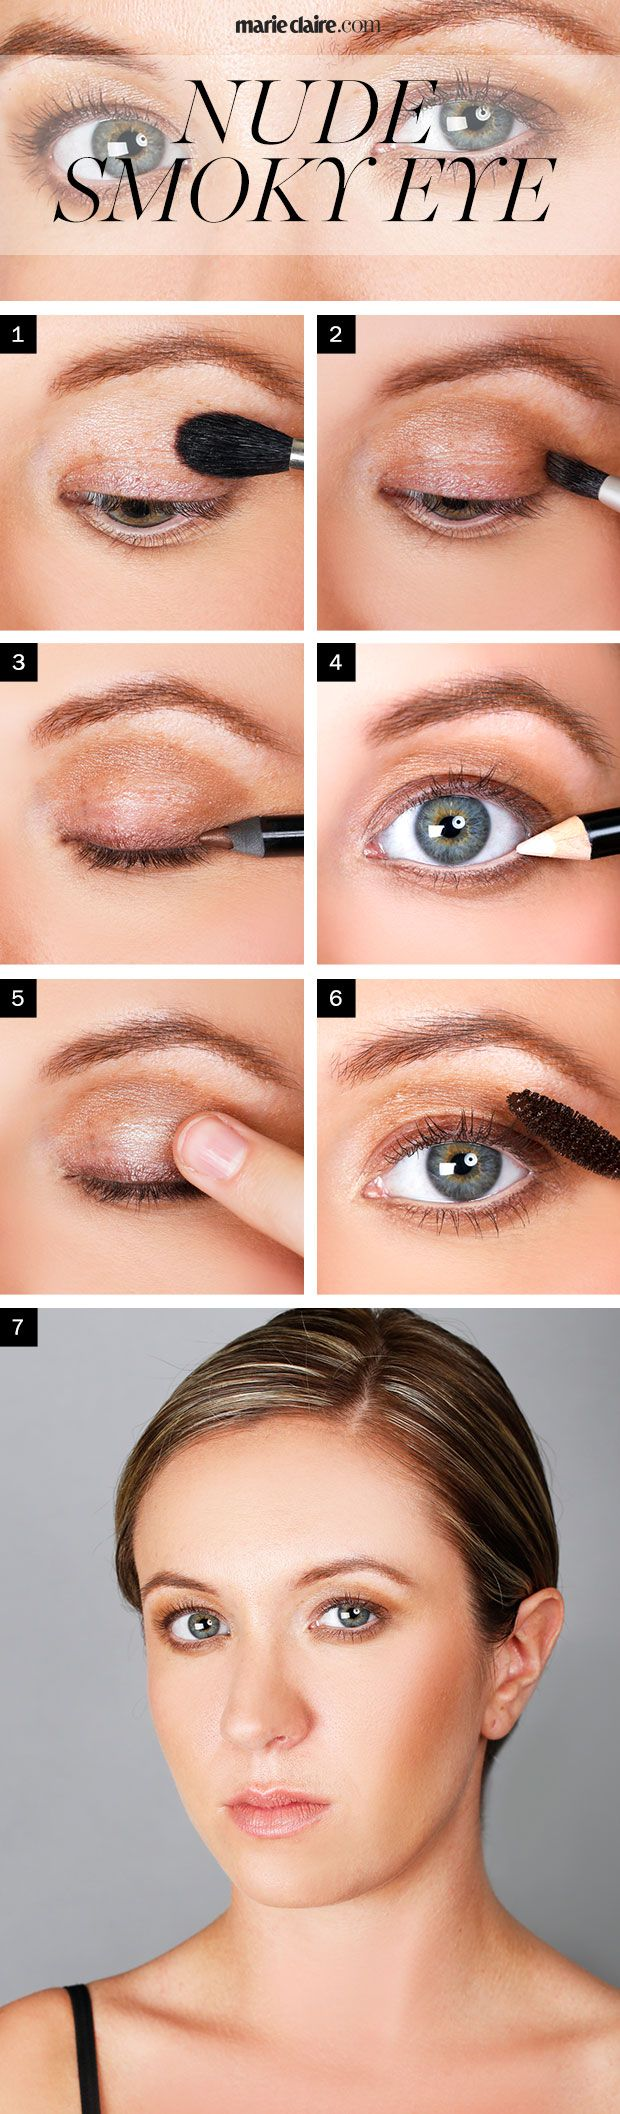 Extrêmement How To Get a Nude Summer Smoky Eye - Step By Step Natural Smoky Eye AE41